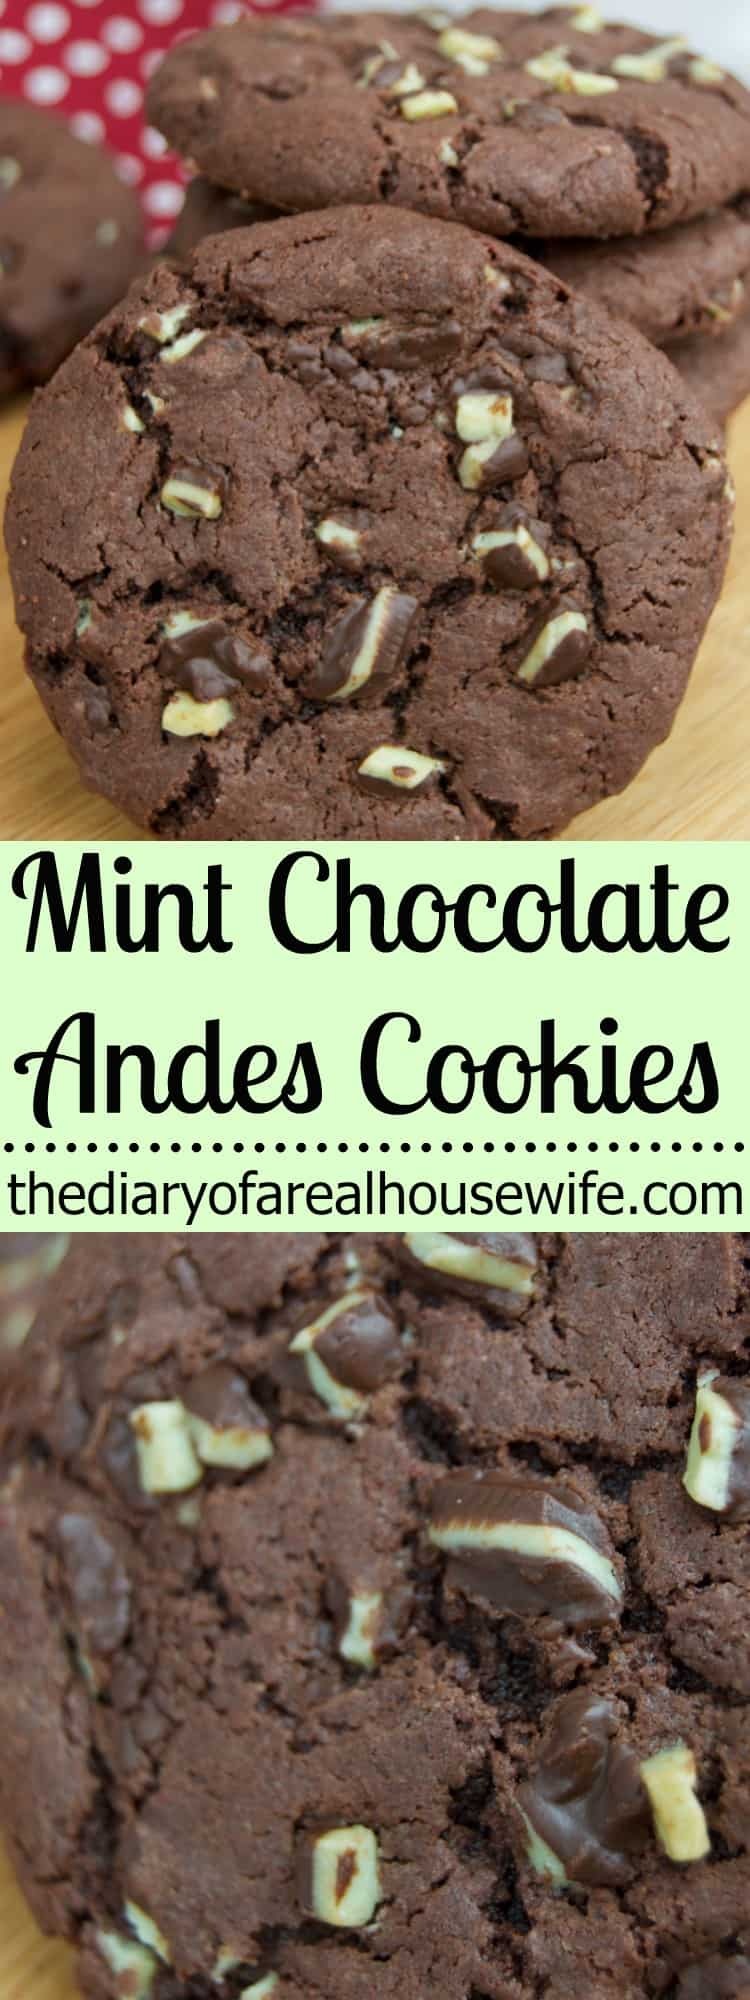 mint-chocolate-andes-cookies